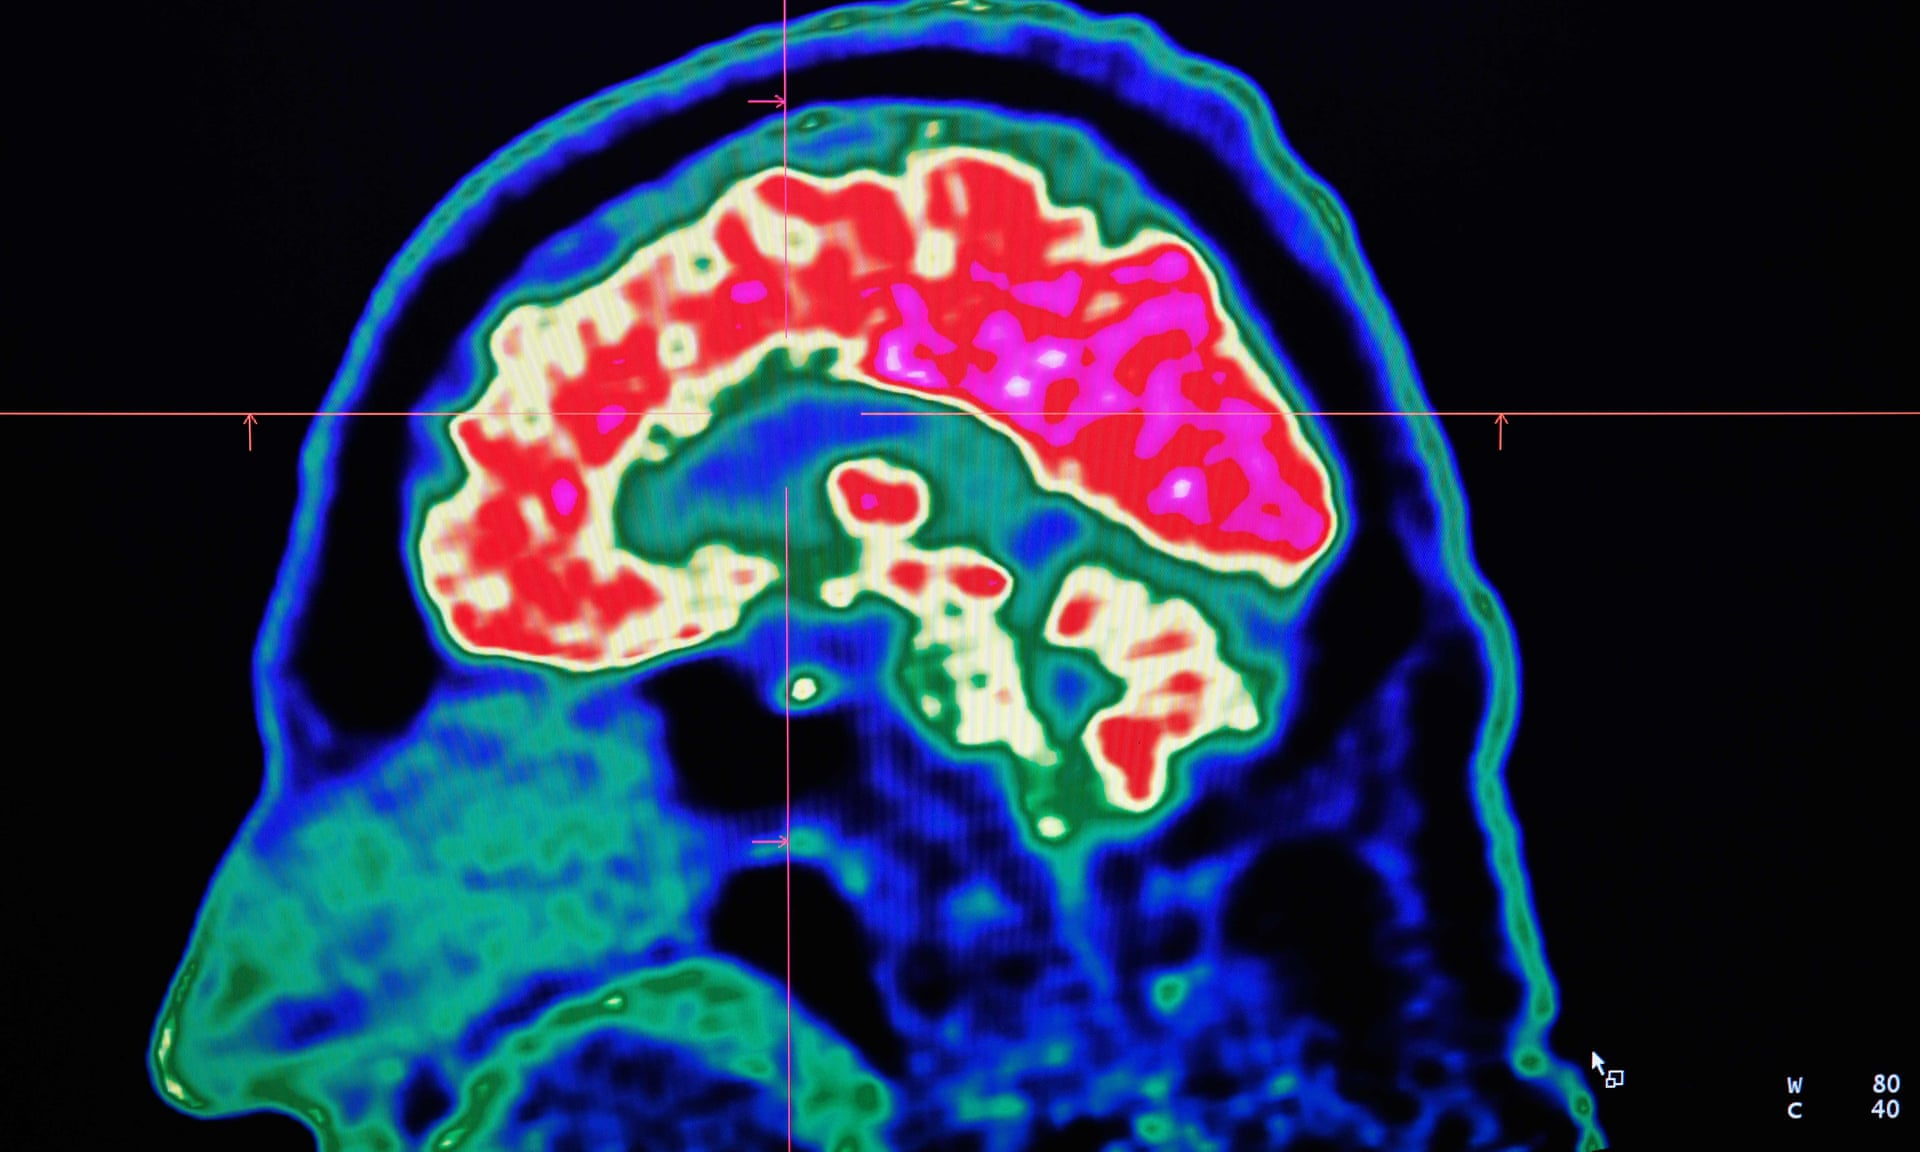 Exercise helps brain deal with Lewy Body Dementia pathologies